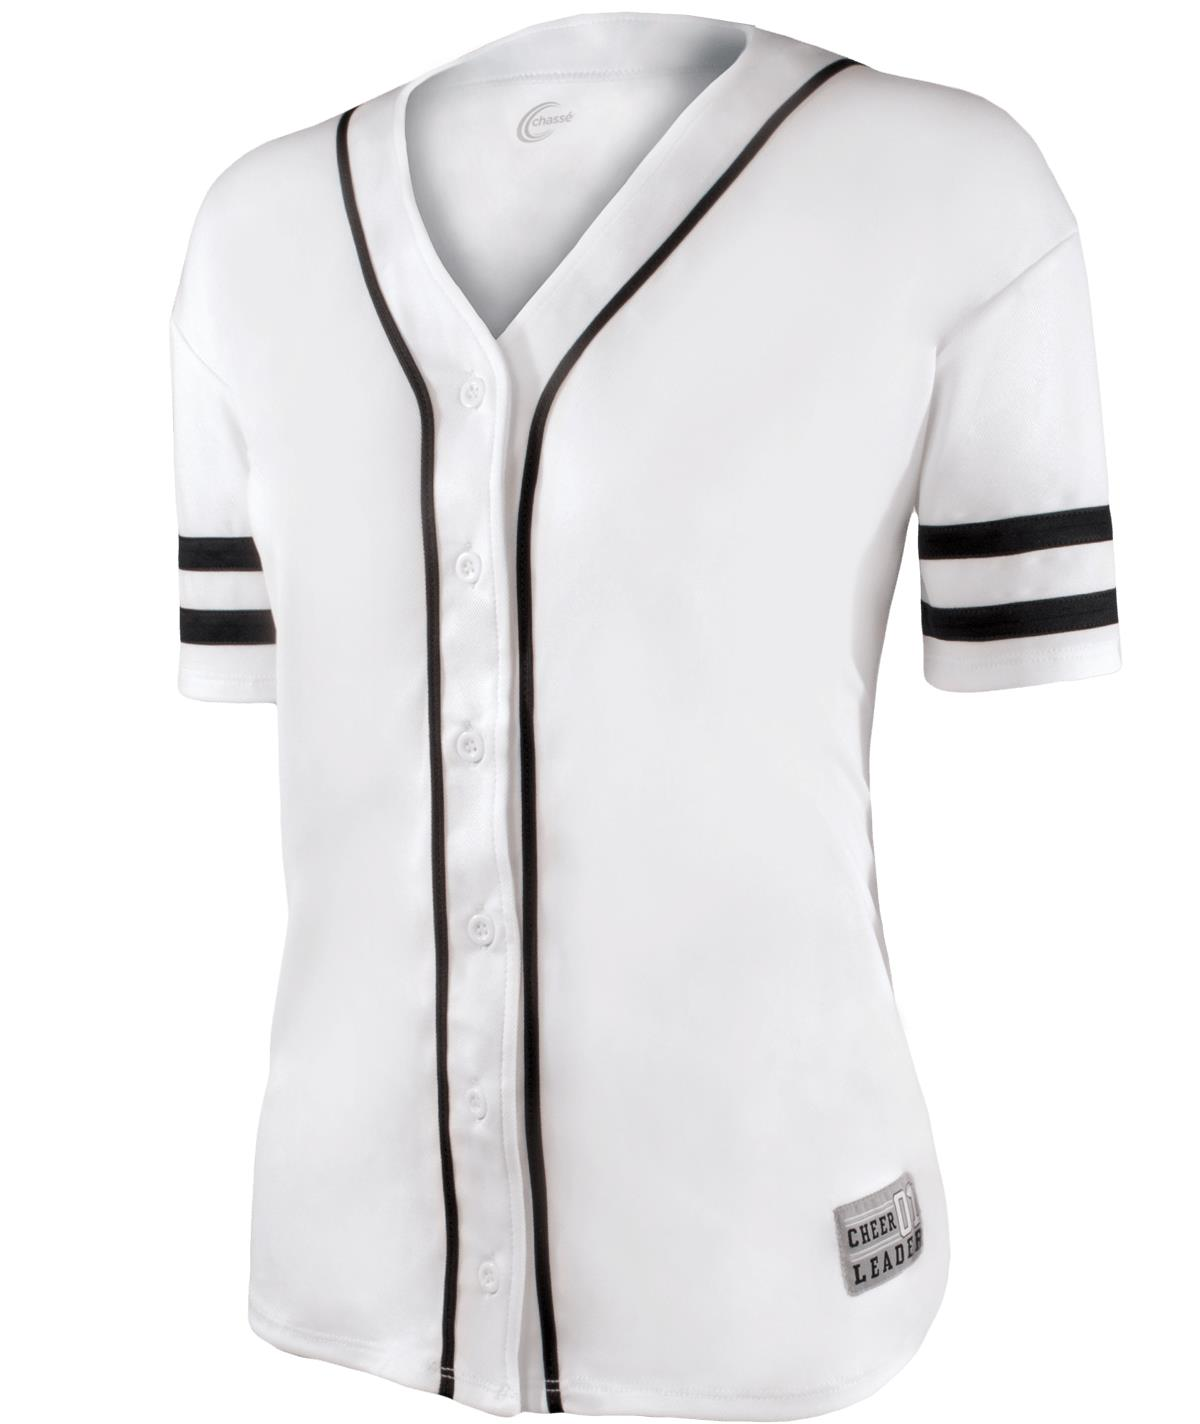 Chassé Home Run Jersey